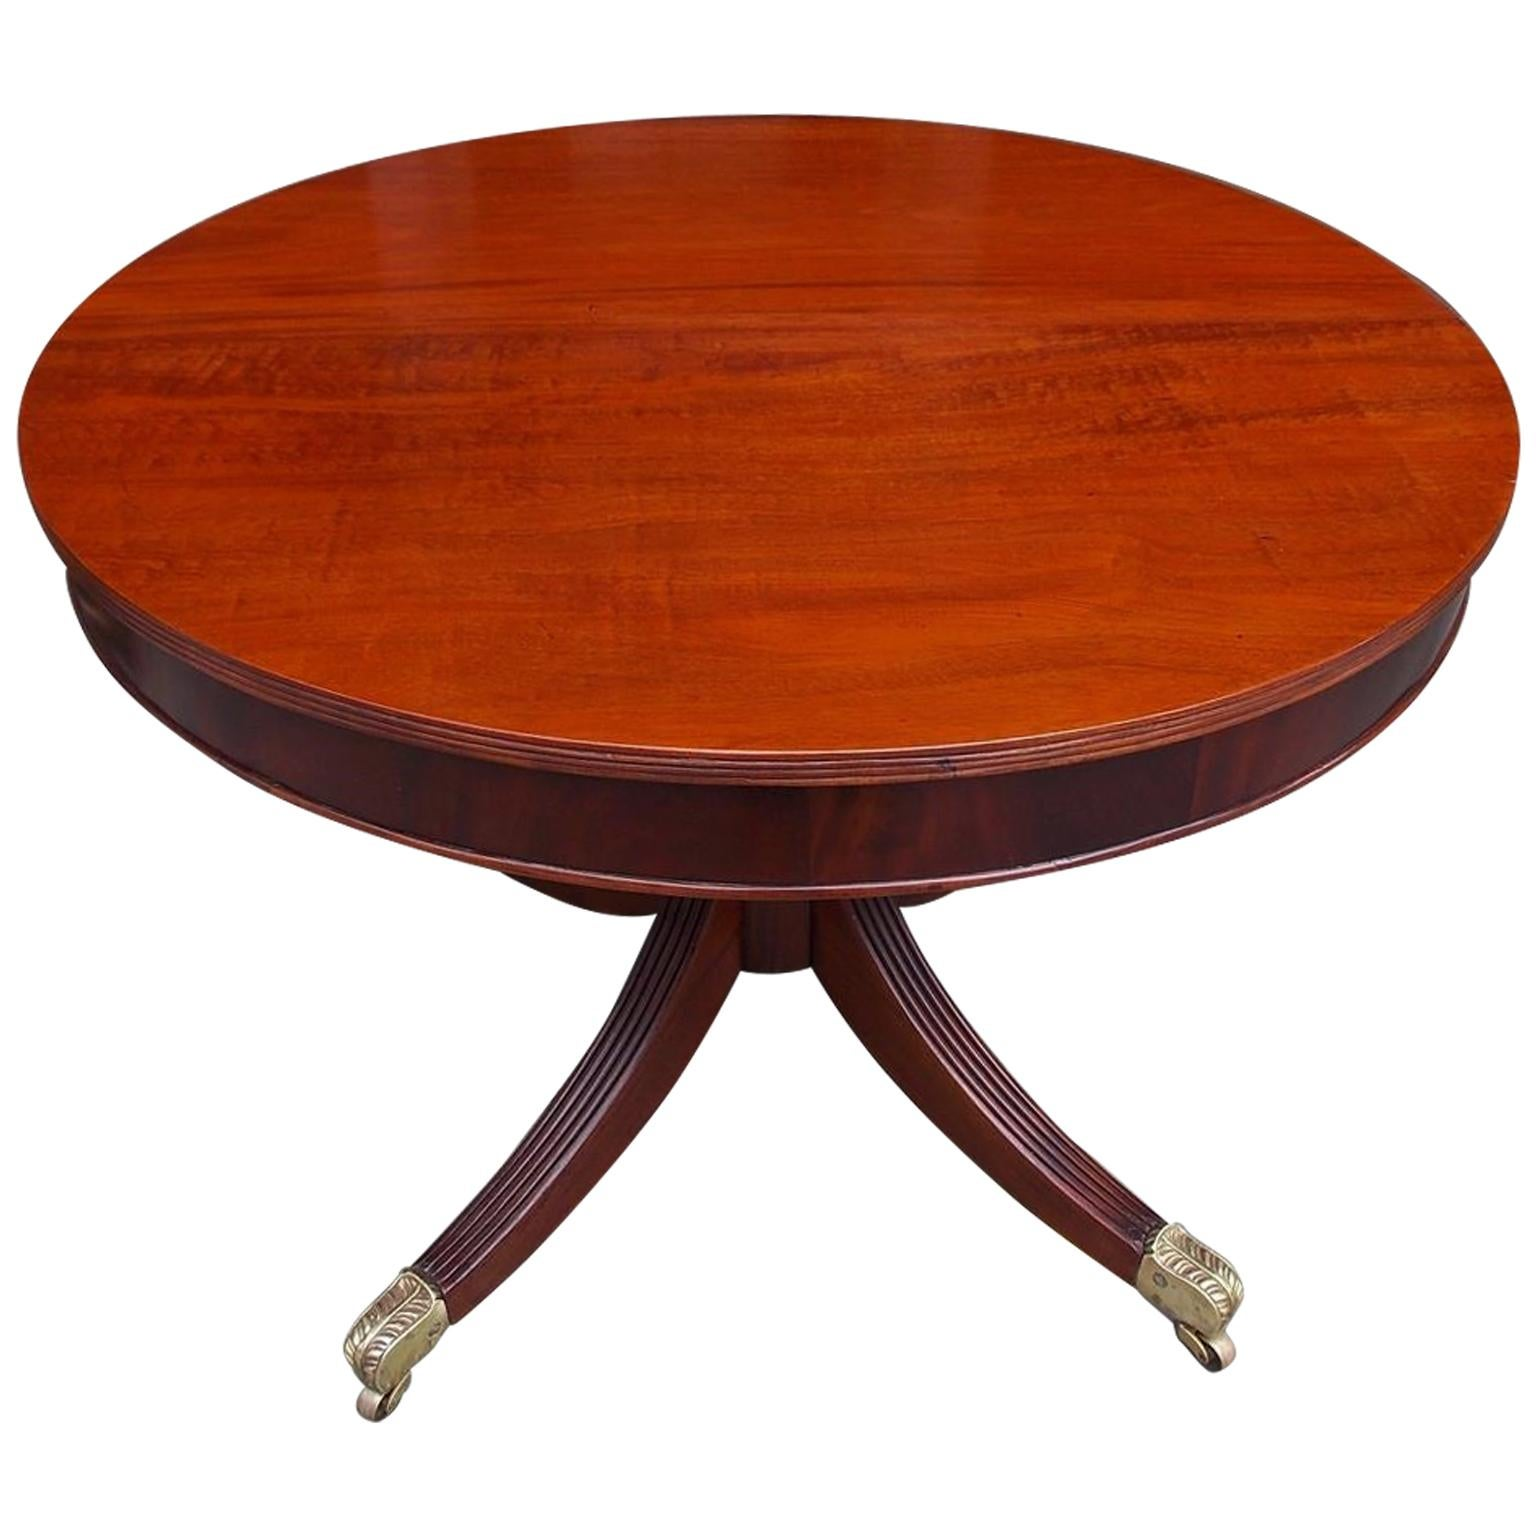 English Regency Mahogany Drum Table with Original Acanthus Brass Casters C. 1815